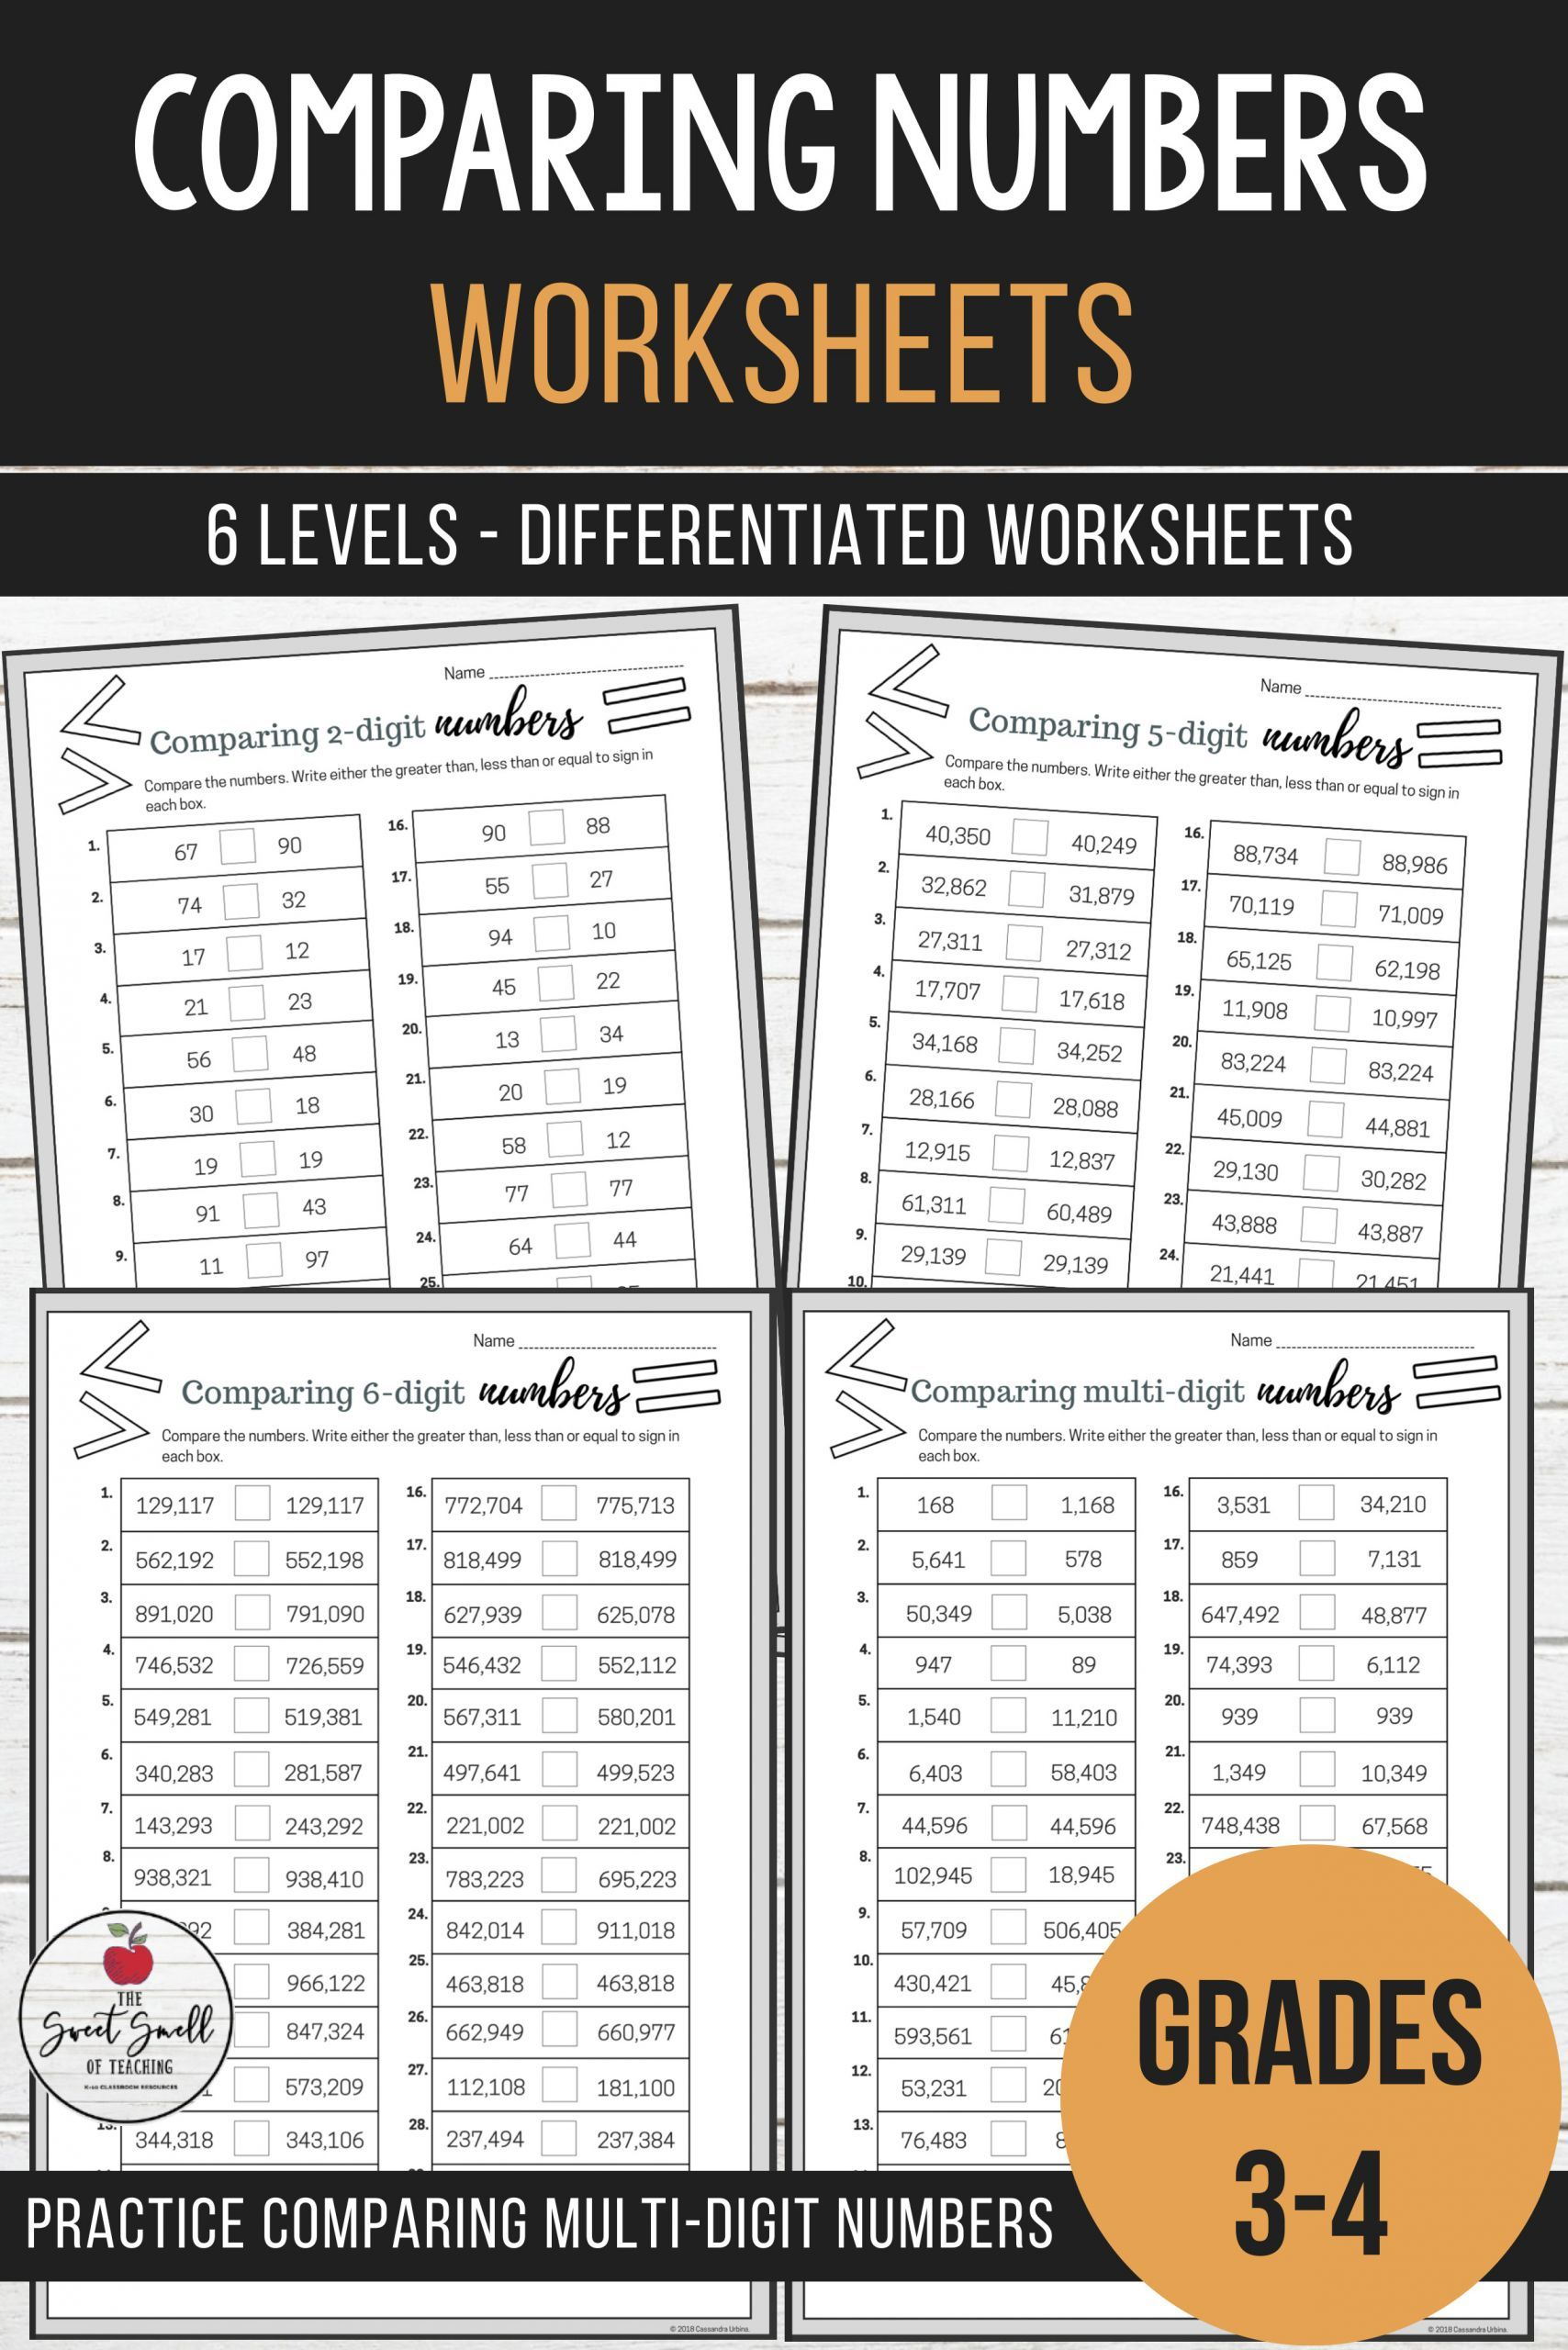 4 Worksheet Numbers Worksheets For Kids In